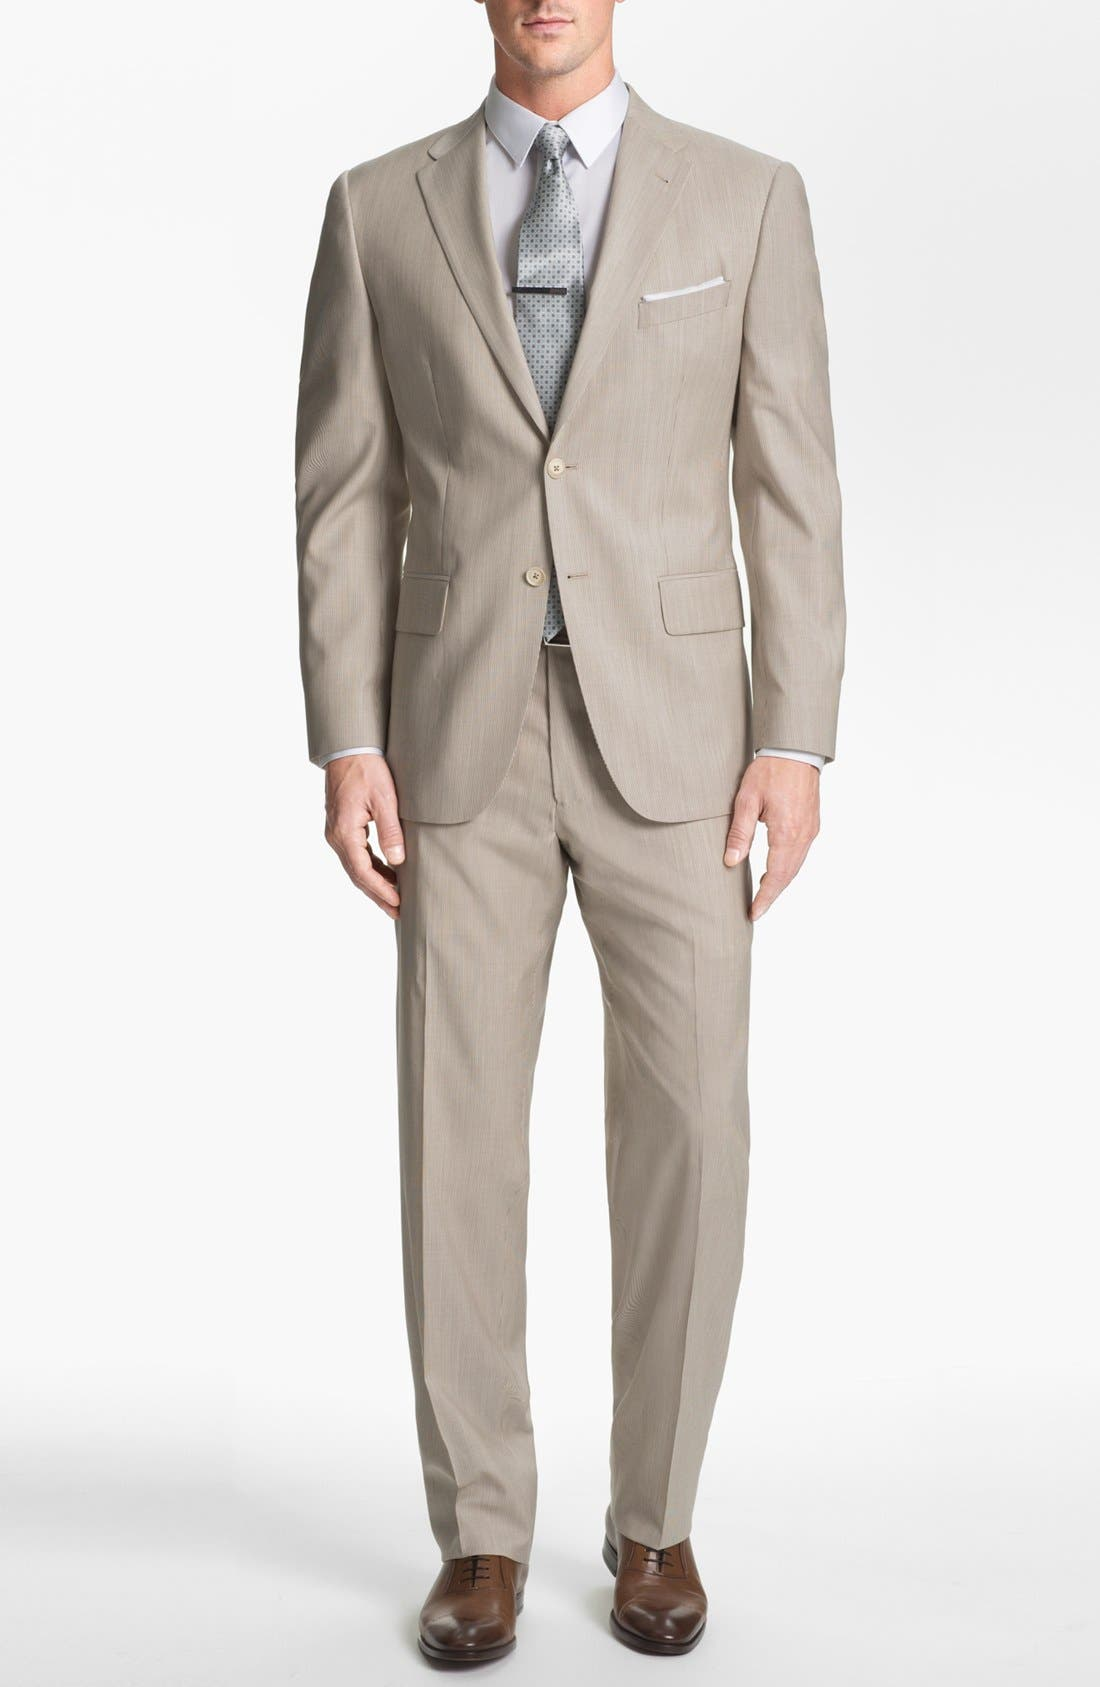 Alternate Image 1 Selected - Joseph Abboud Trim Fit Stripe Wool Suit